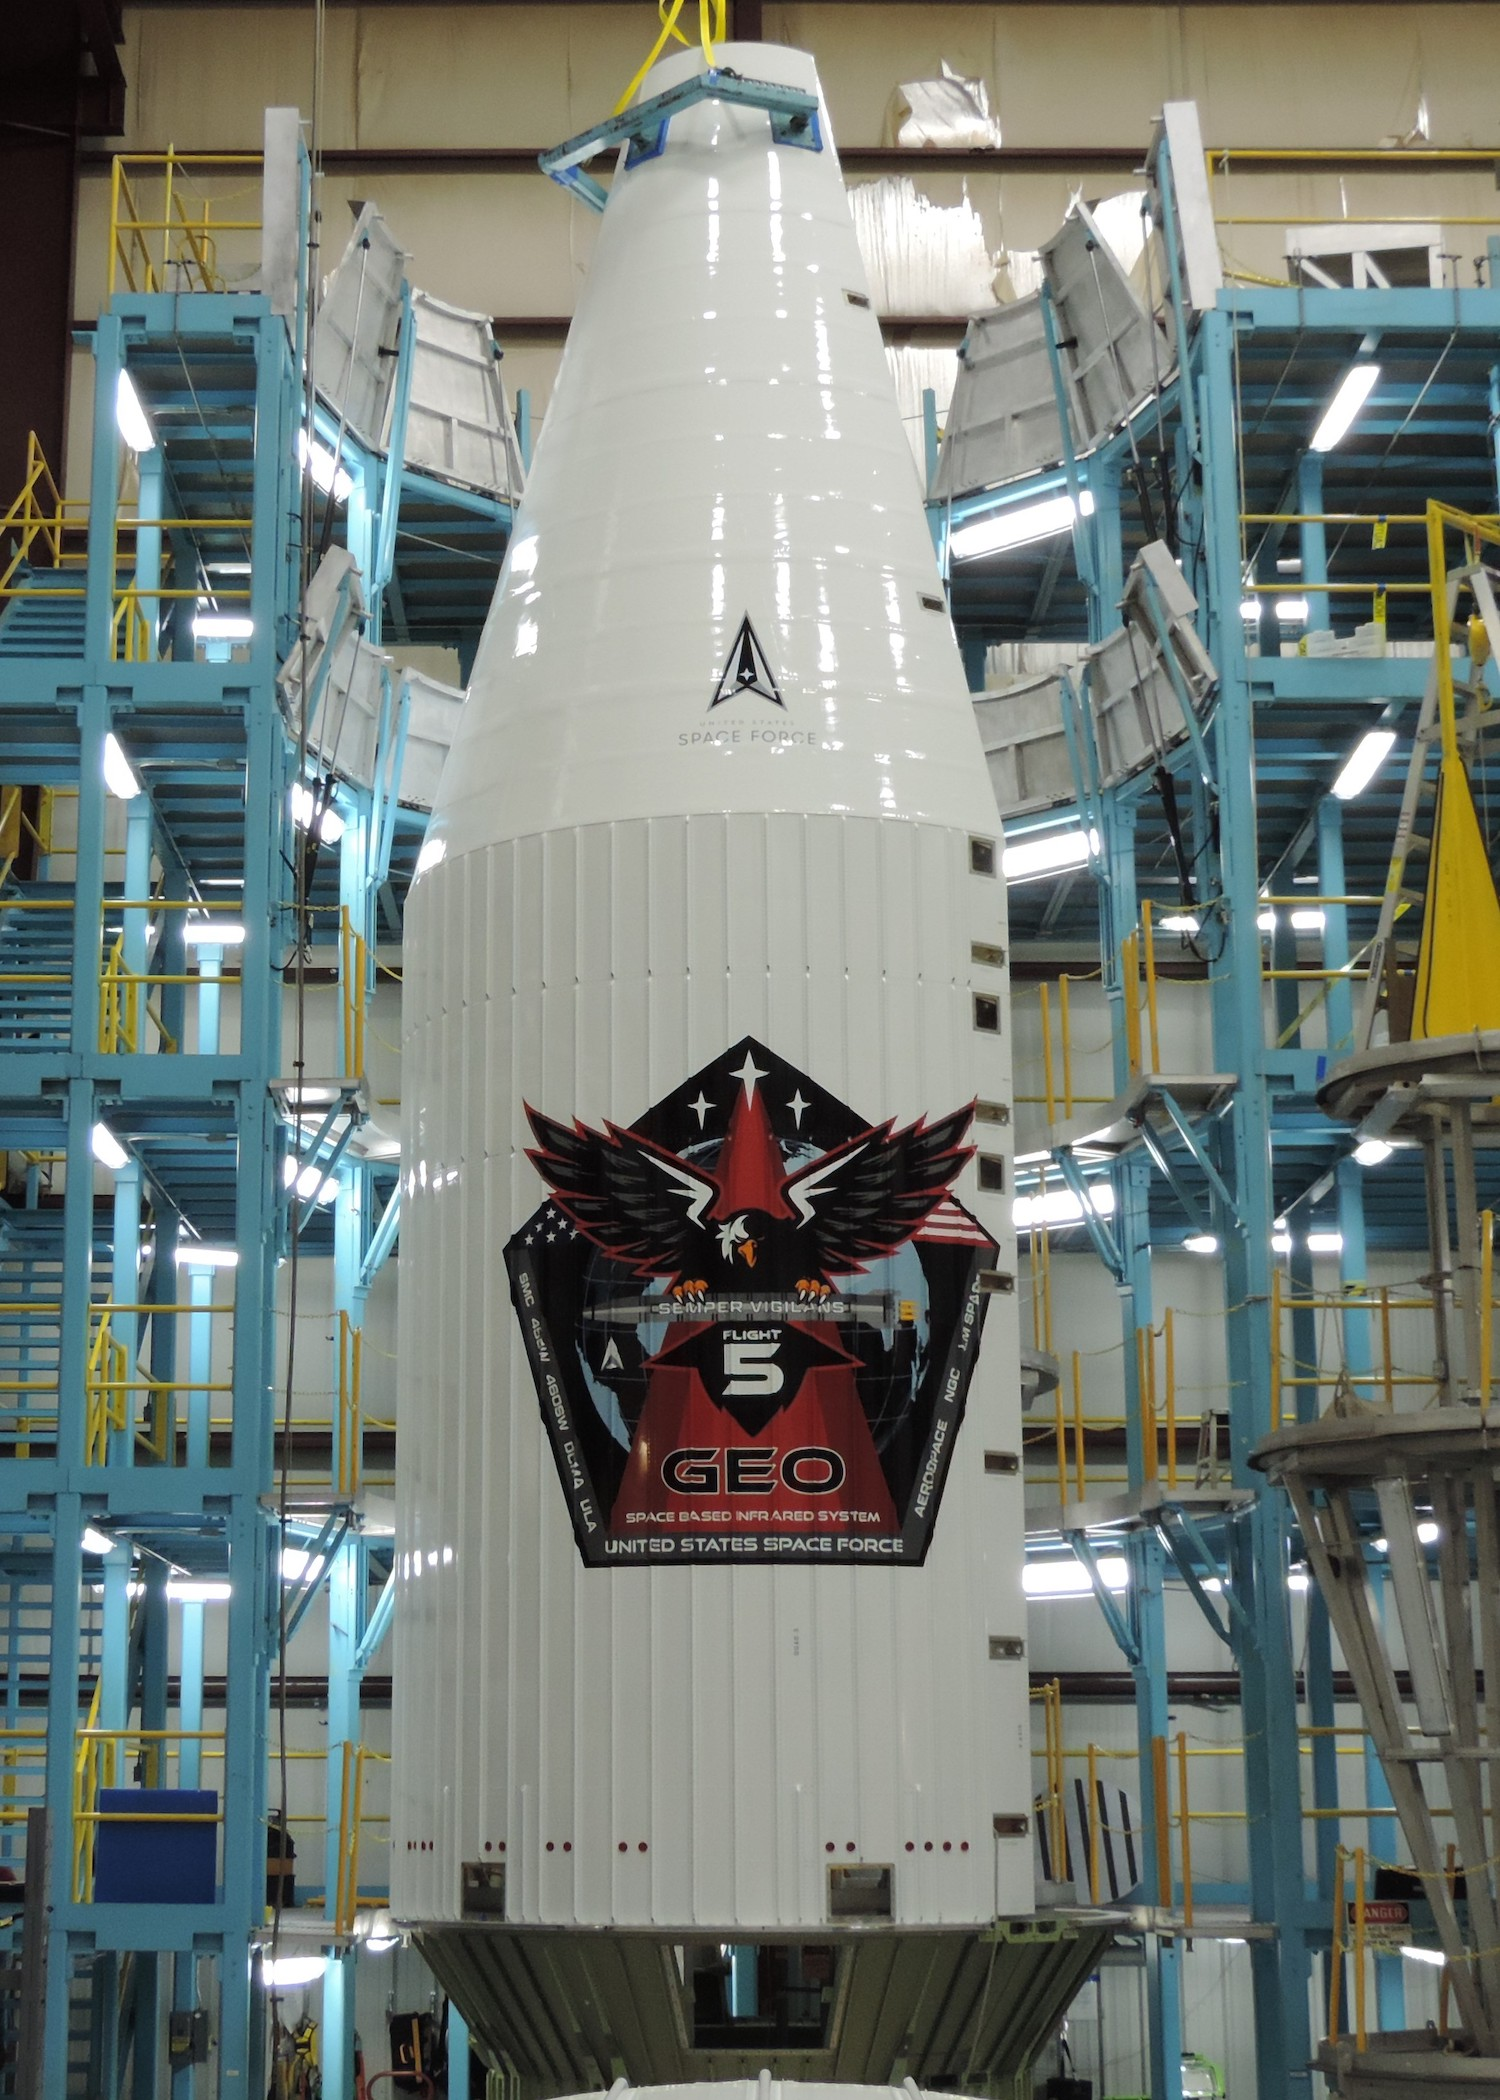 The Harlingen-made payload fairing will protect SBIRS GEO-5 during launch. Photo by United Launch Alliance